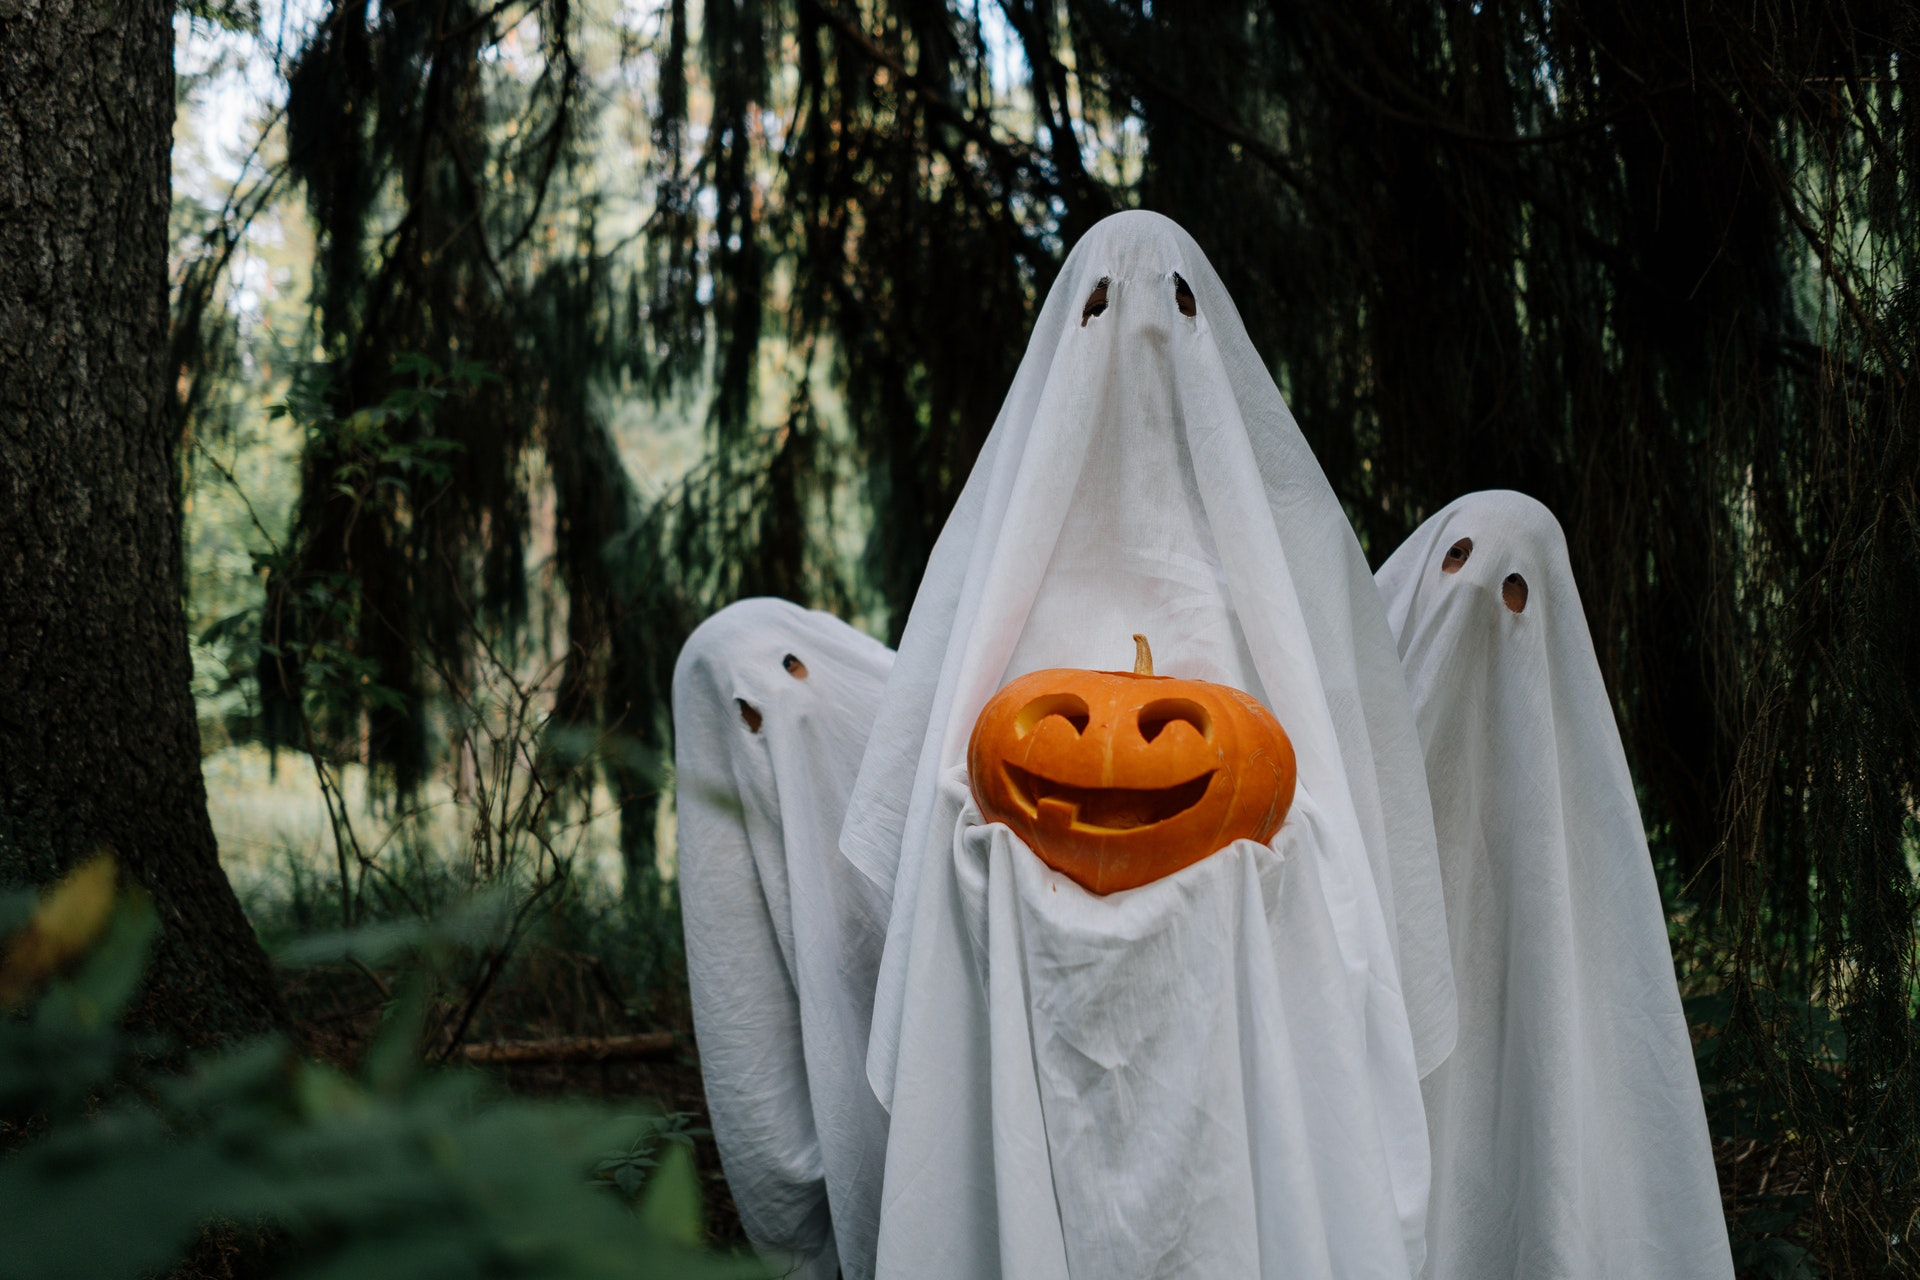 a person dressed as a ghost in a sheet holding a jack-o-lantern while two other shorter ghosts poke their heads out from behind them